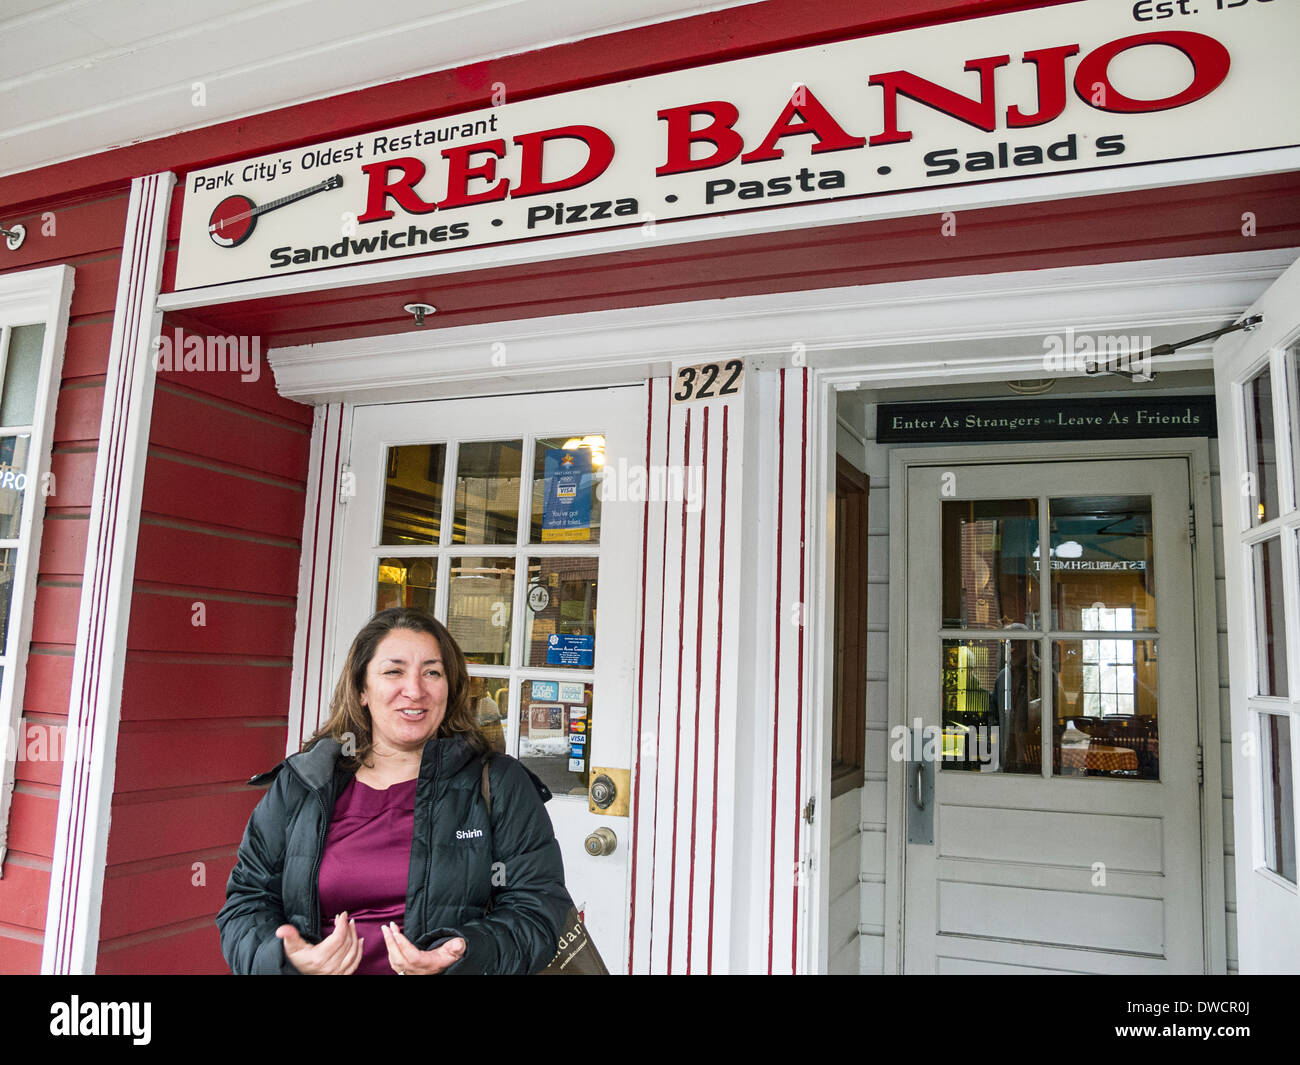 Red Banjo, casual food restaurant along Park City's Main Street. One of Park City's oldest restaurants. Park City, Utah. - Stock Image